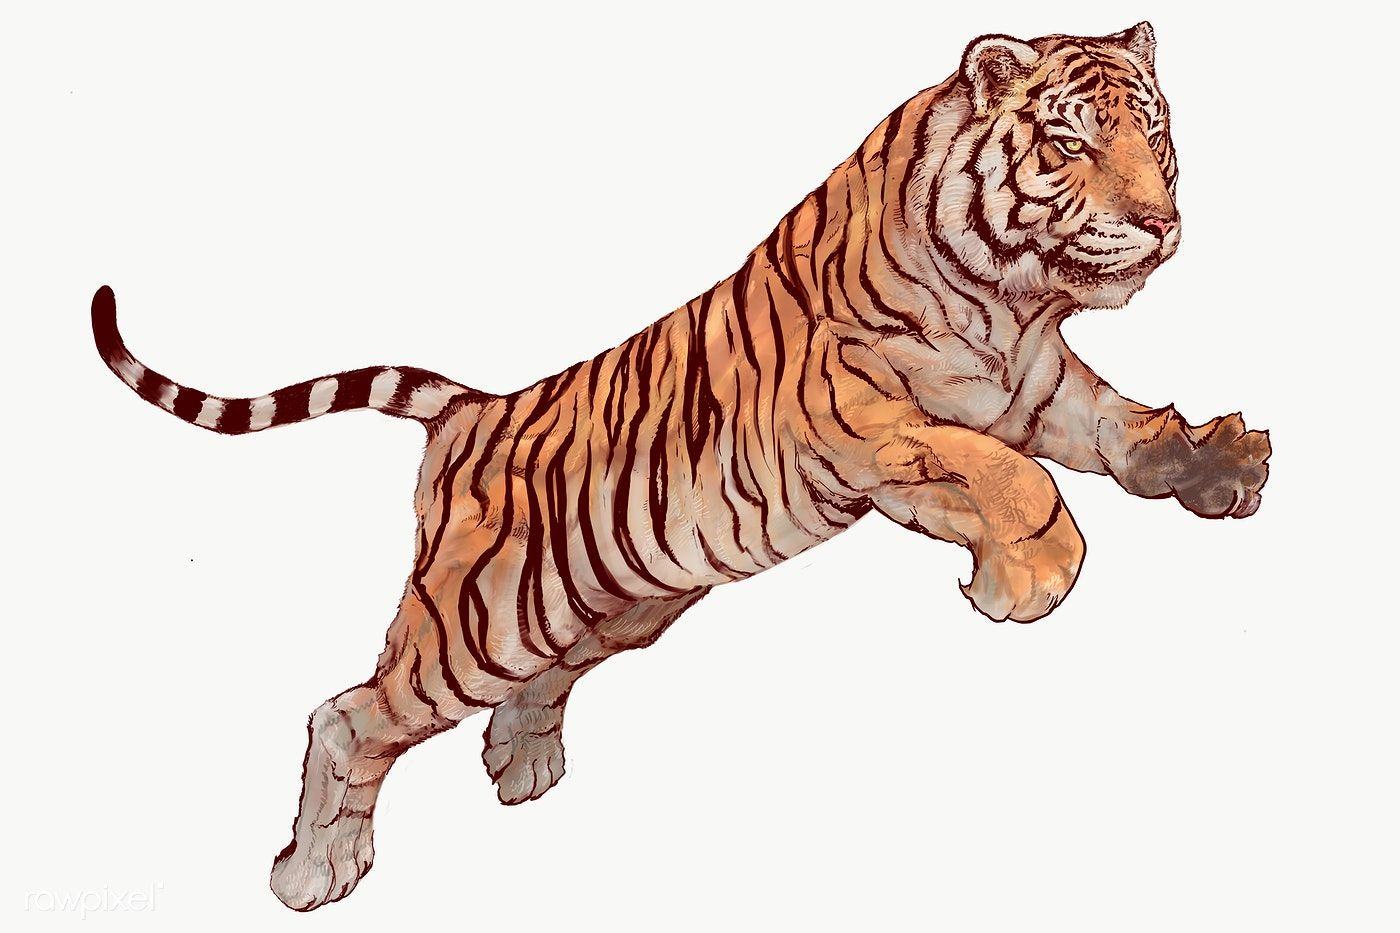 Download Premium Png Of Hand Drawn Jumping Tiger Overlay 2351187 Tiger Illustration How To Draw Hands Graphic Novel Illustration